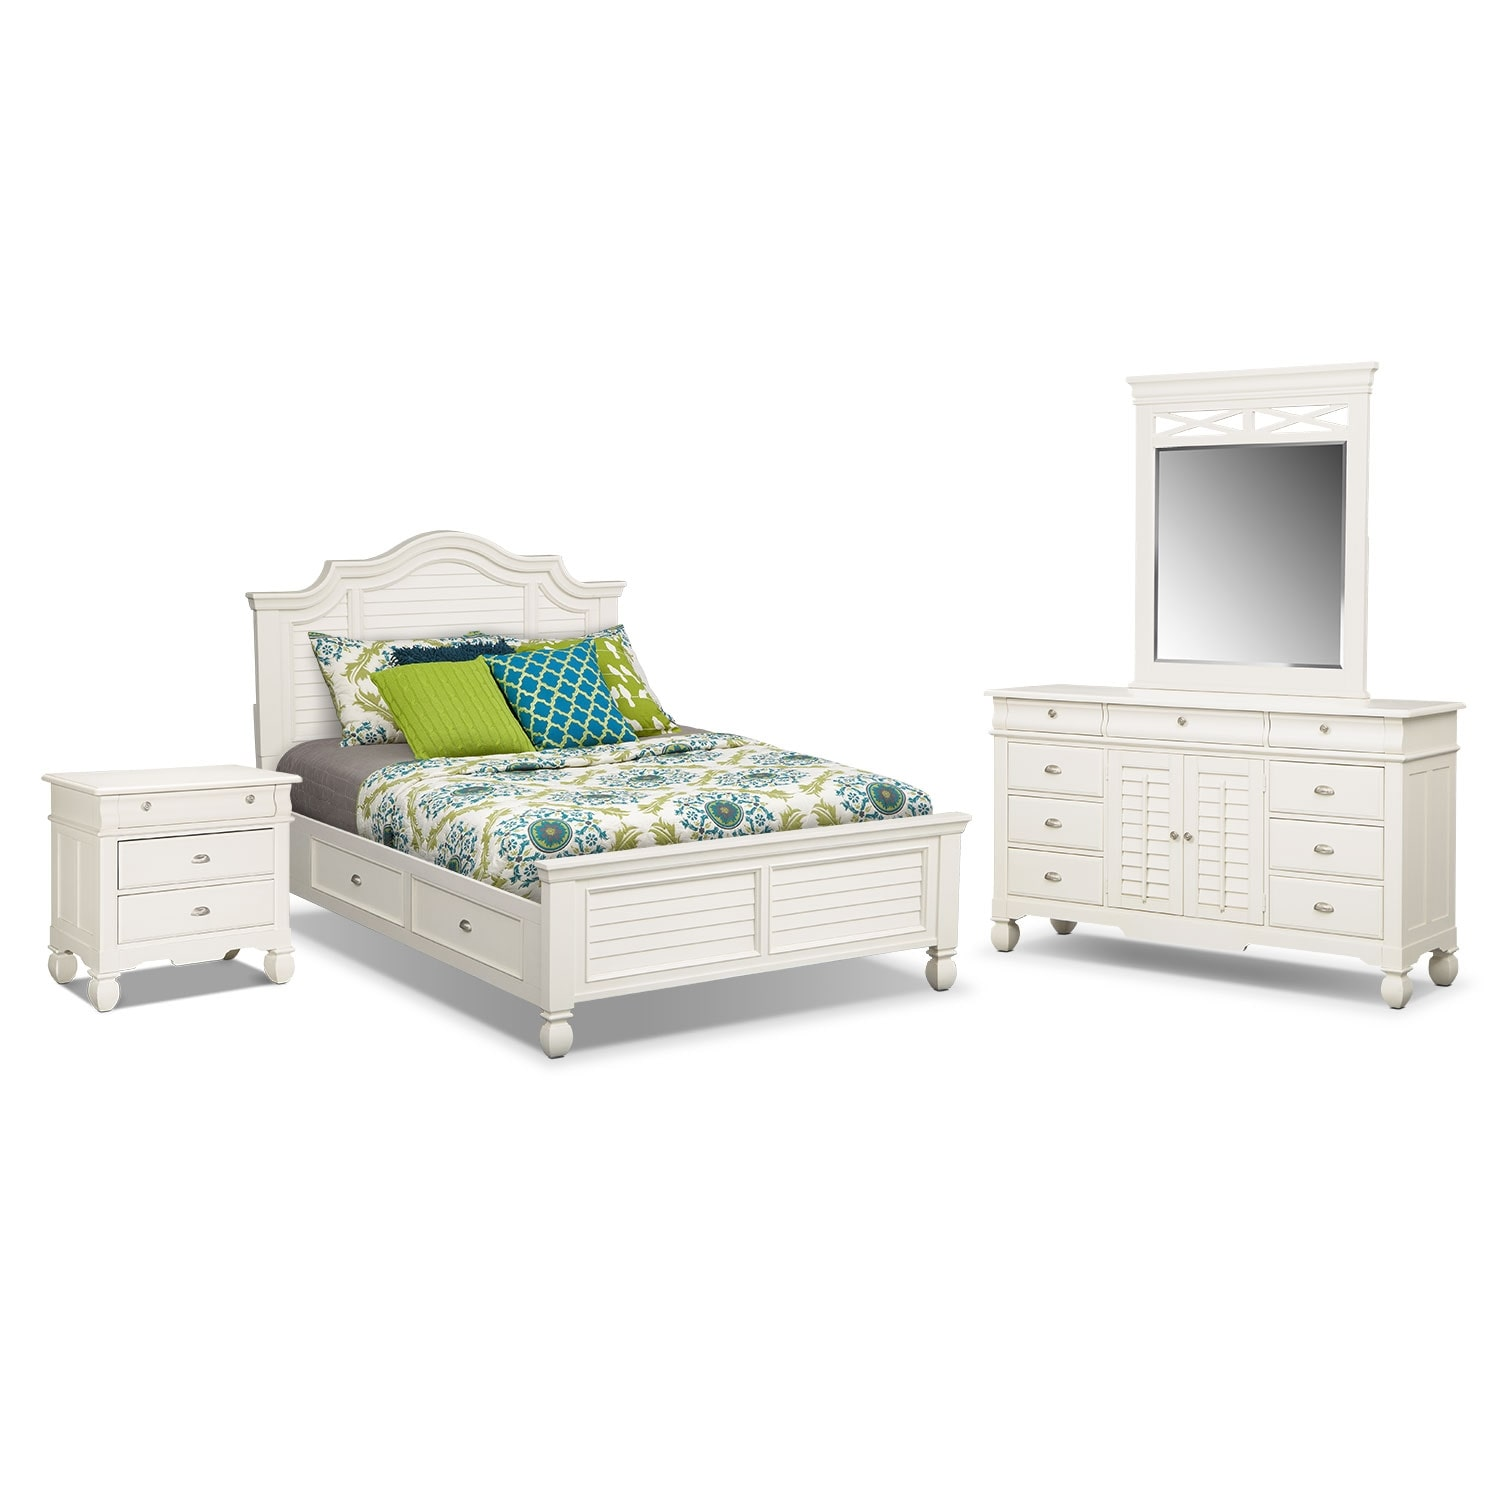 Bedroom Furniture - Plantation Cove 6-Piece Queen Storage Bedroom Set - White